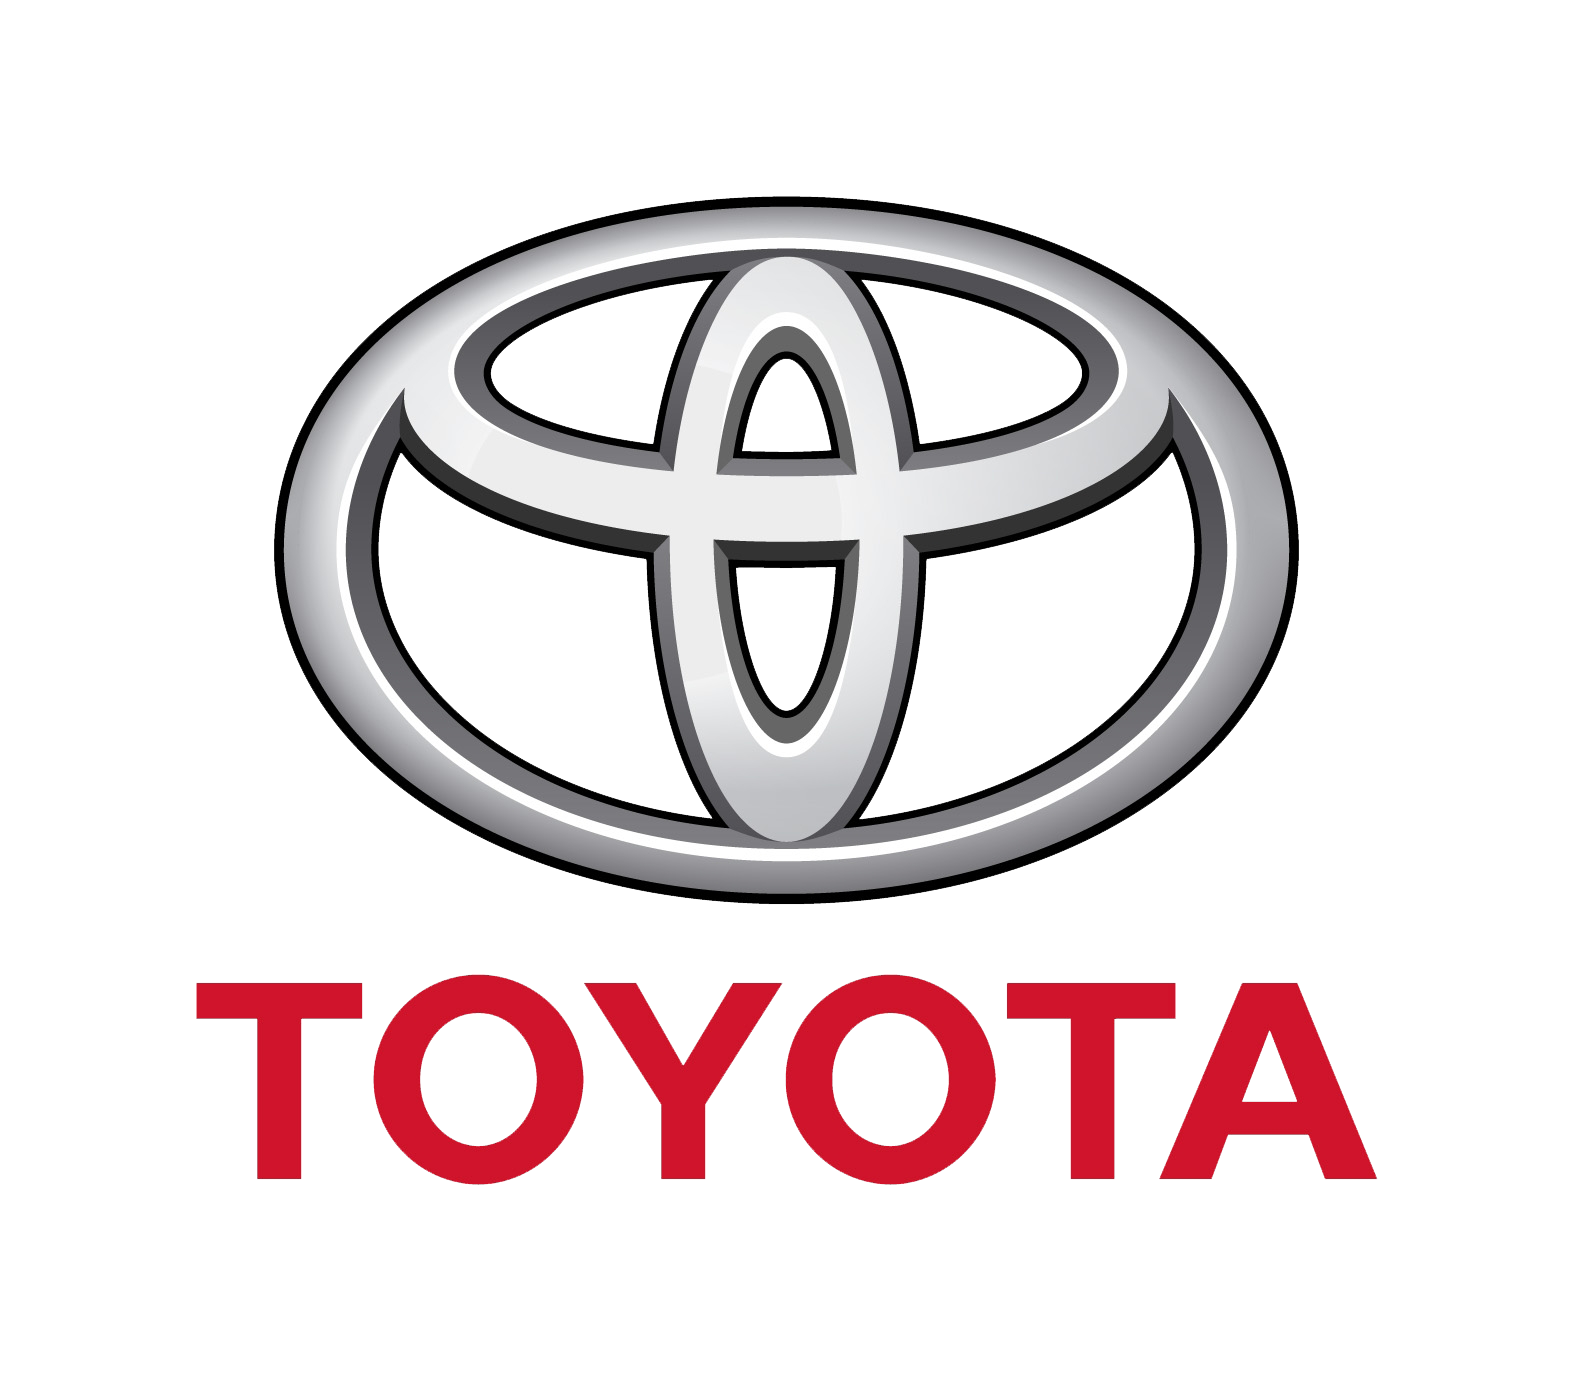 Top Toyota Logo PNG Images - Toyota Logo Vector PNG